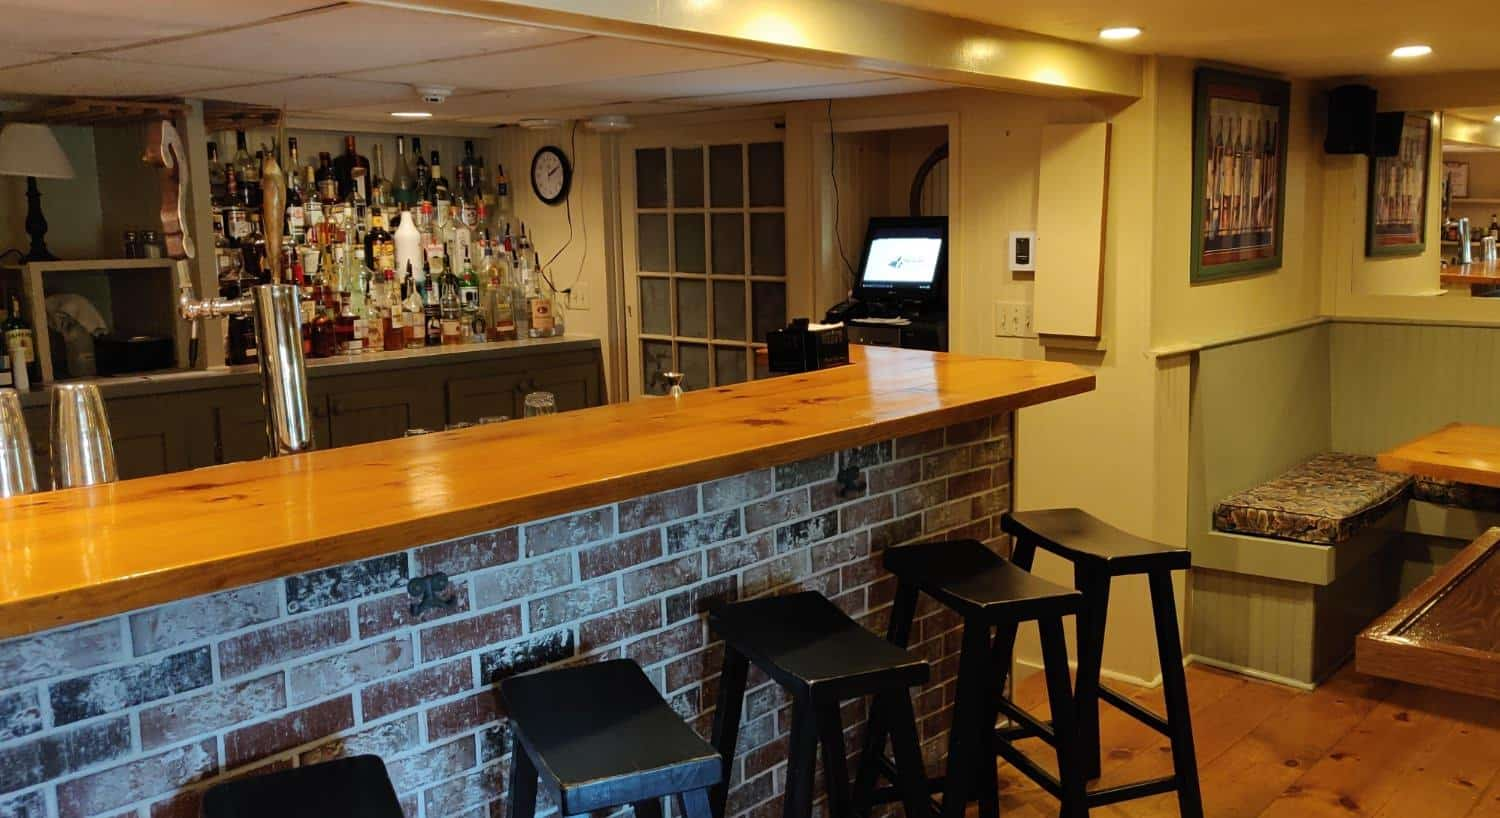 Wooden bar with brick underneath, black bar stools, multiple bottles of liquor behind the bar, and other seating